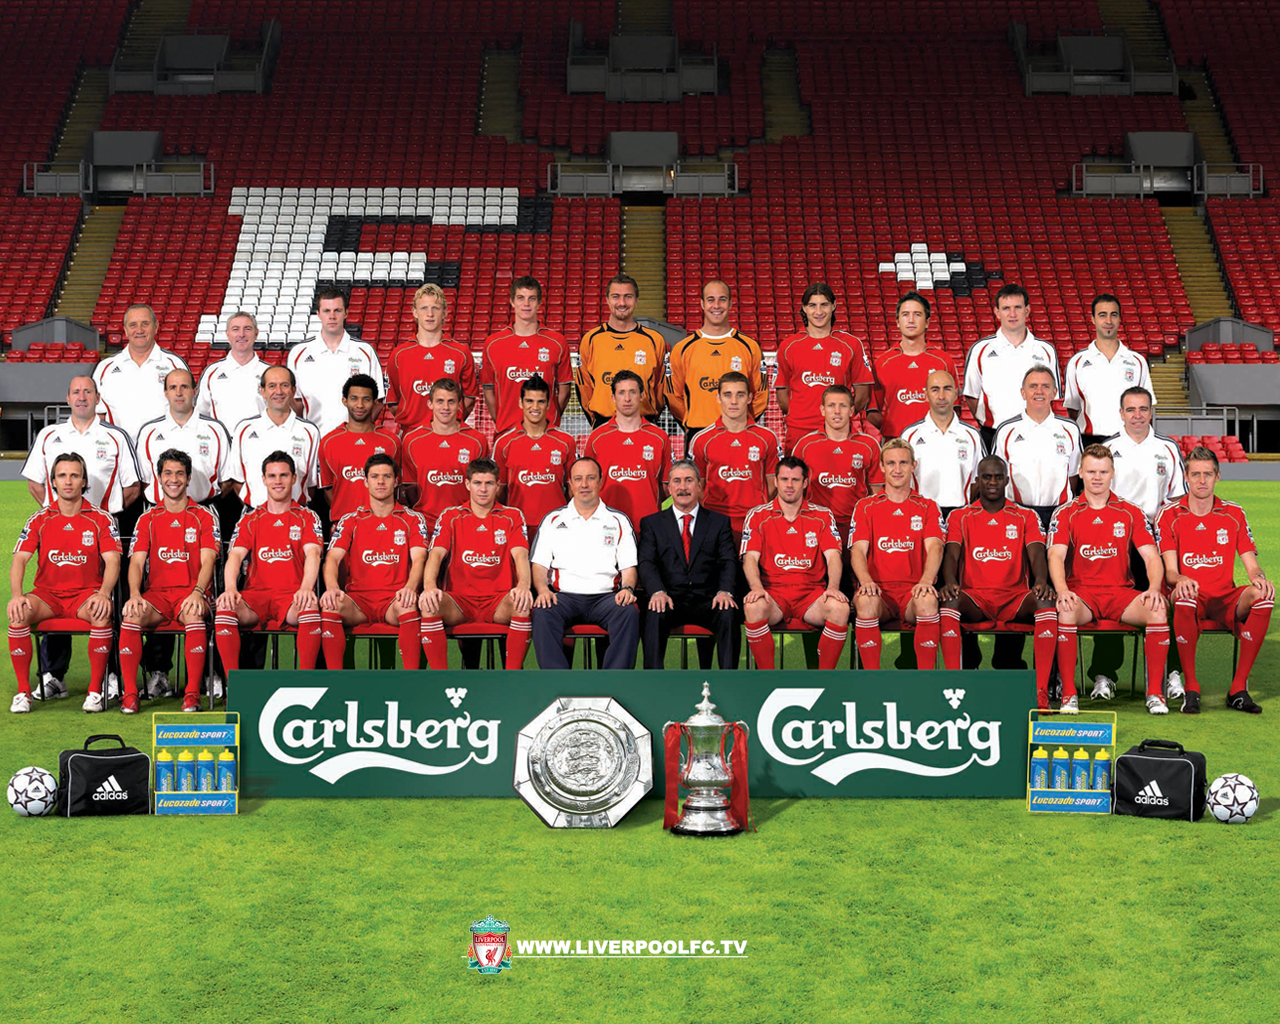 http://3.bp.blogspot.com/-SNAVOwJFlBY/TyUbGlBYOvI/AAAAAAAAAH0/D0-IAOMQgBI/s1600/Liverpool-Football-Club-Team-HD-Wallpaper.jpg